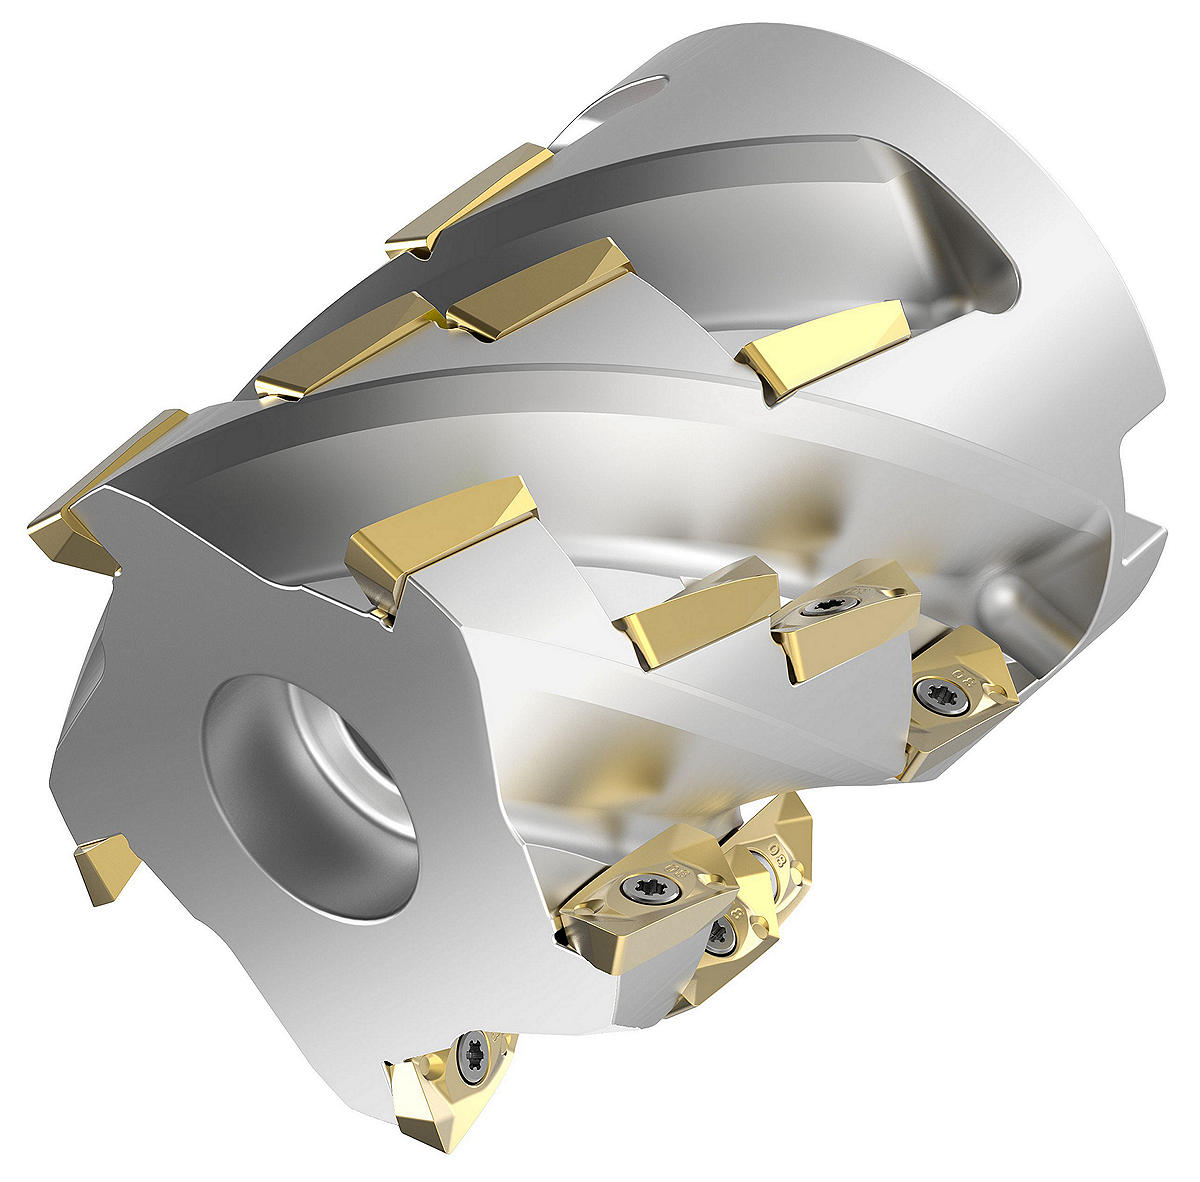 Indexable Helical Shell Mills